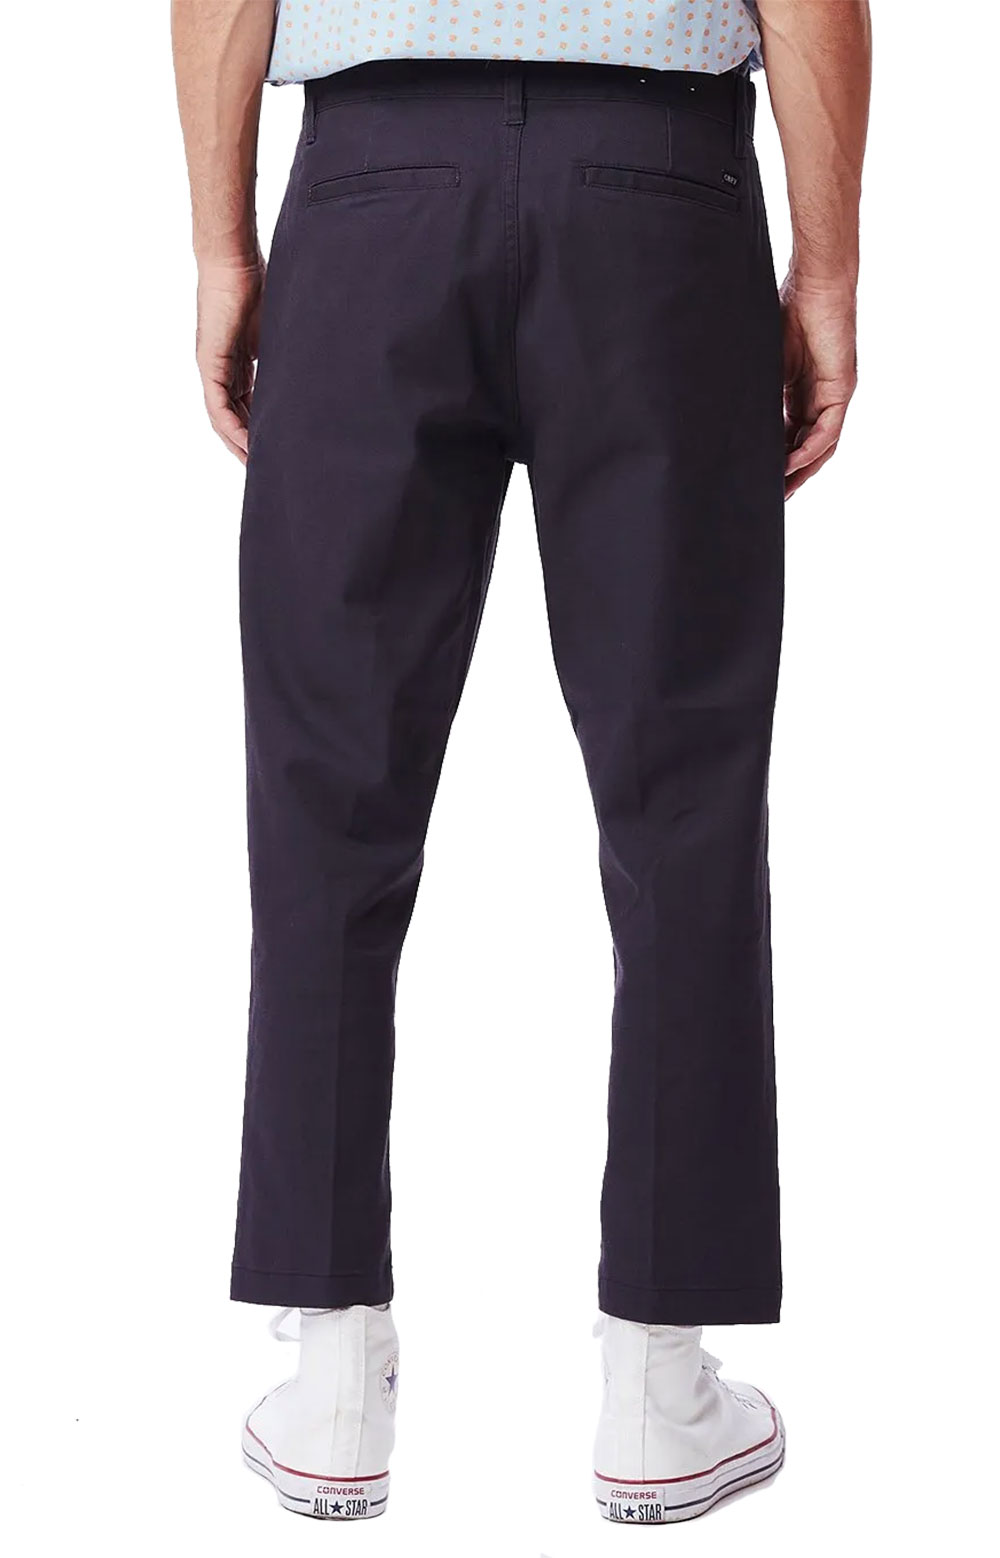 Straggler Flooded Pants - French Navy 2